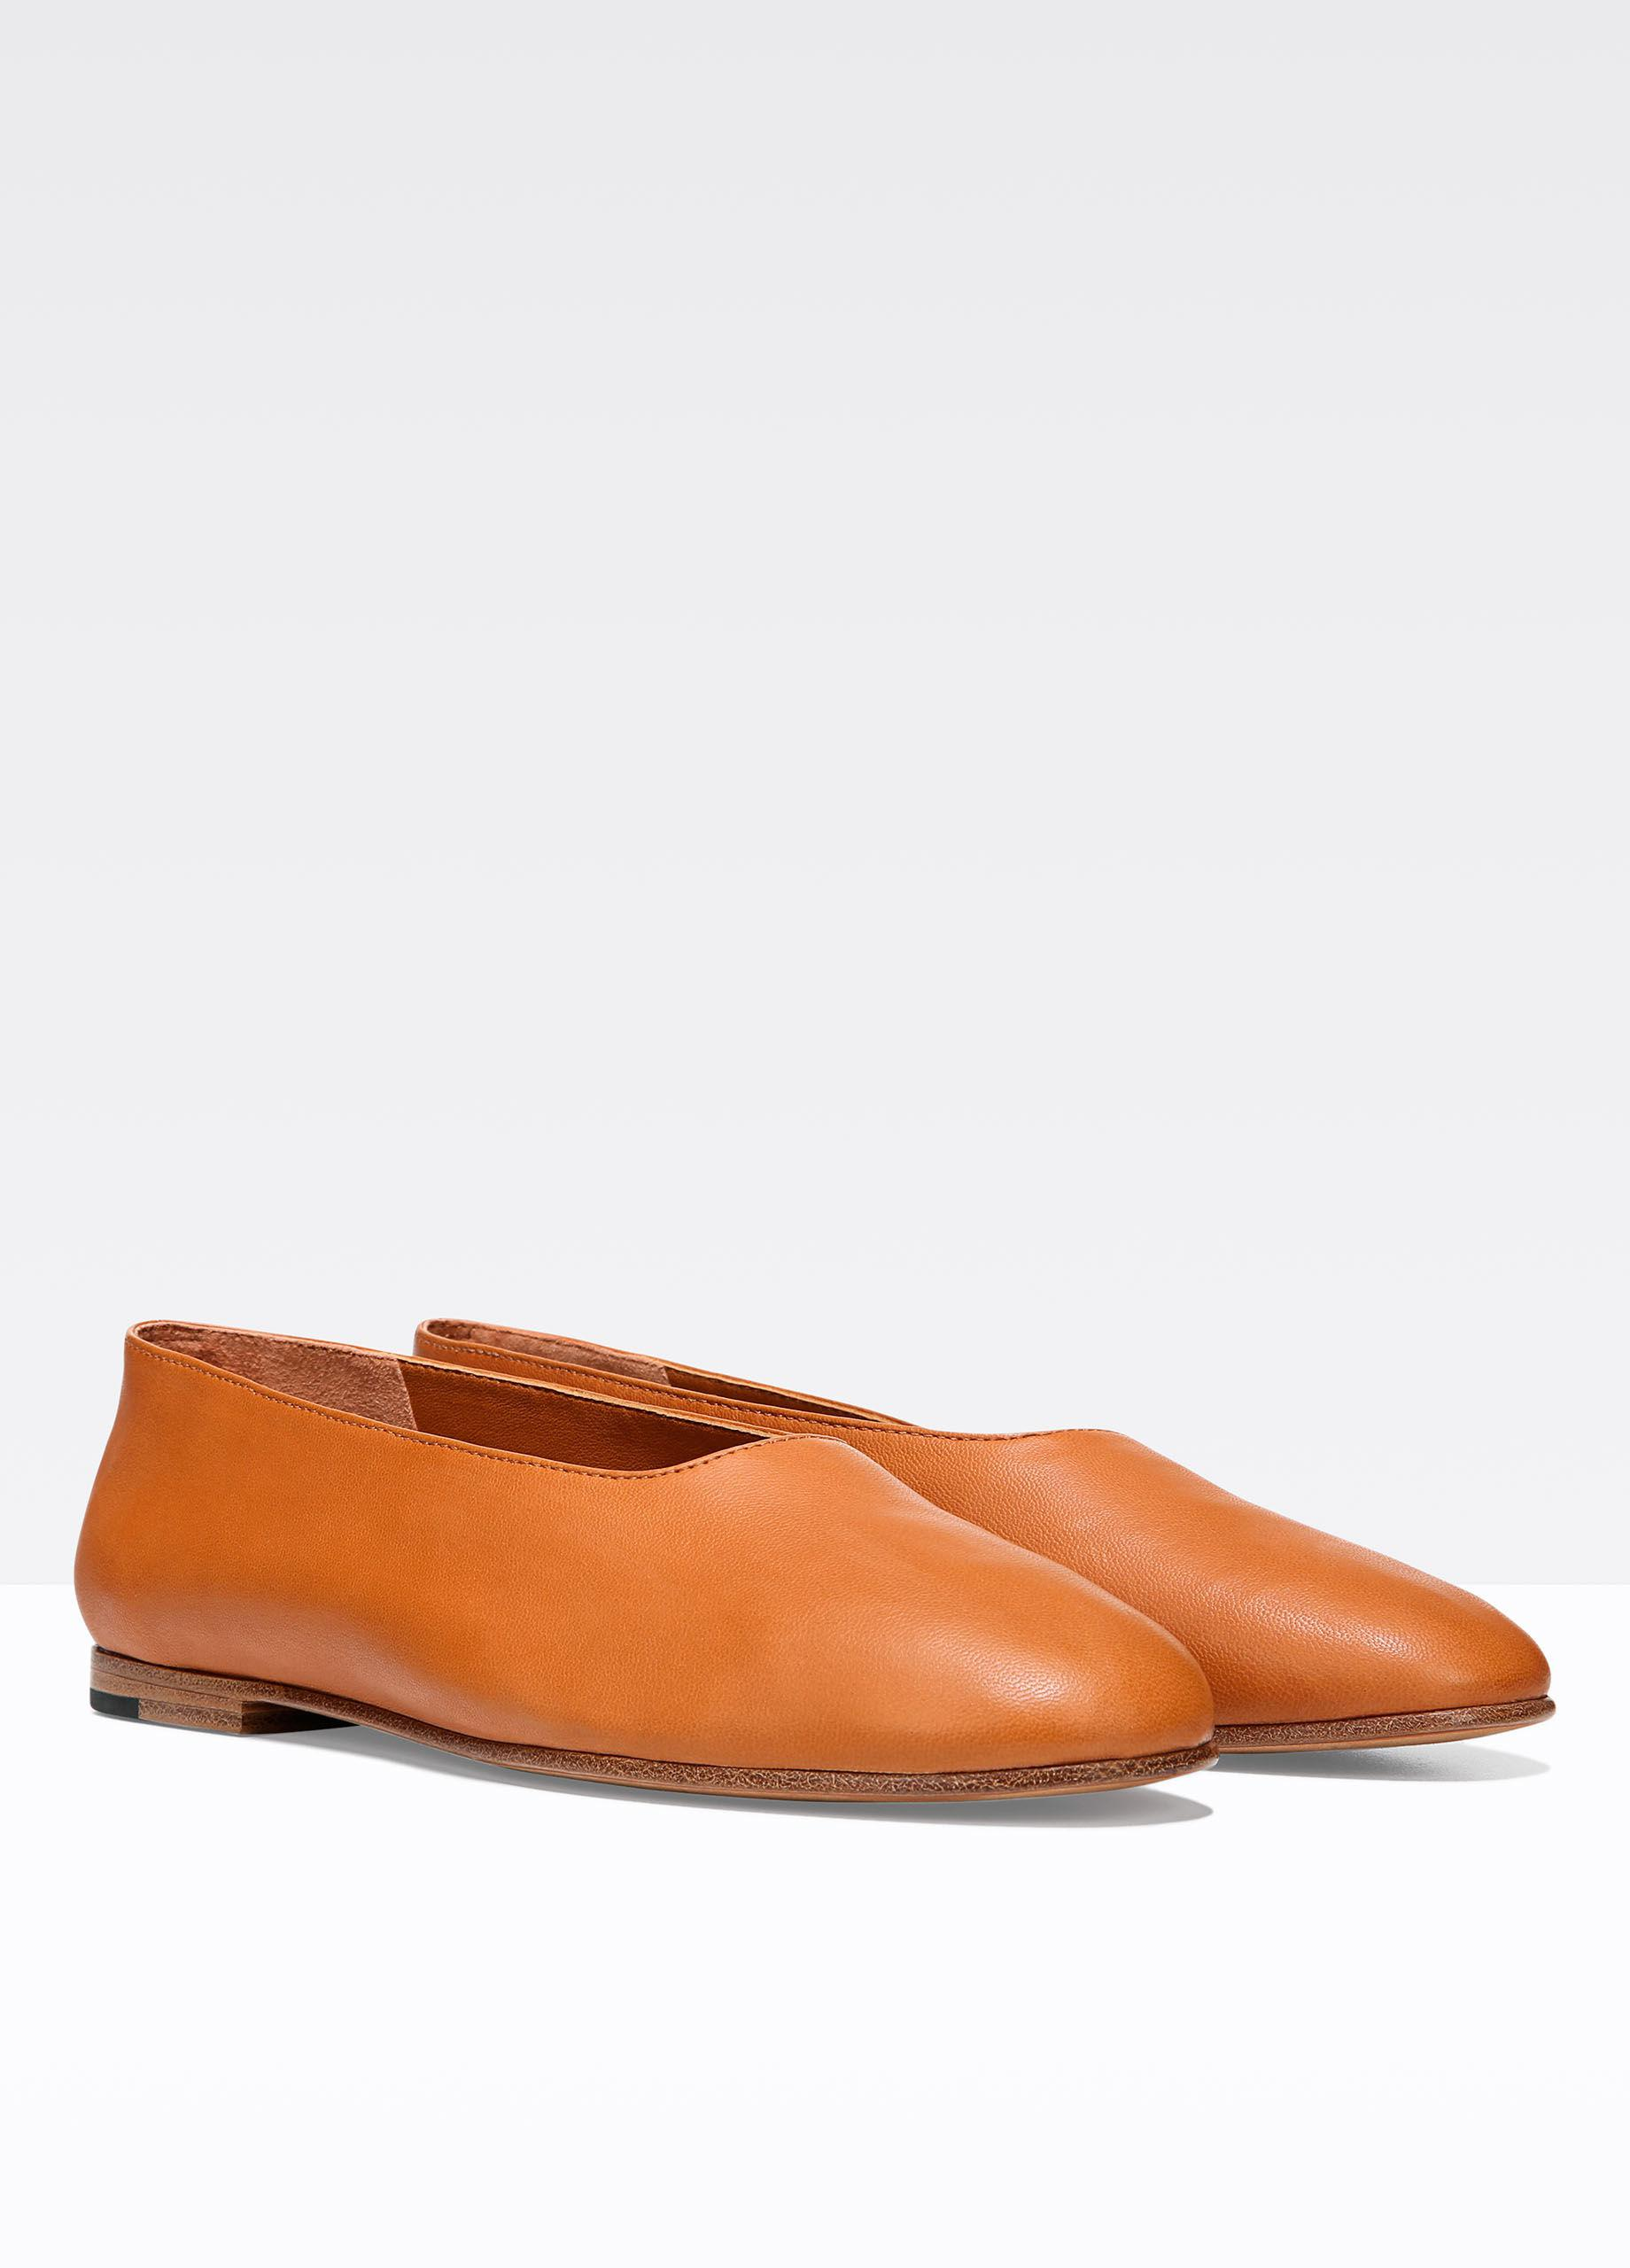 Vince Leather Womens Maxwell 2 Closed Toe Ballet Flats In